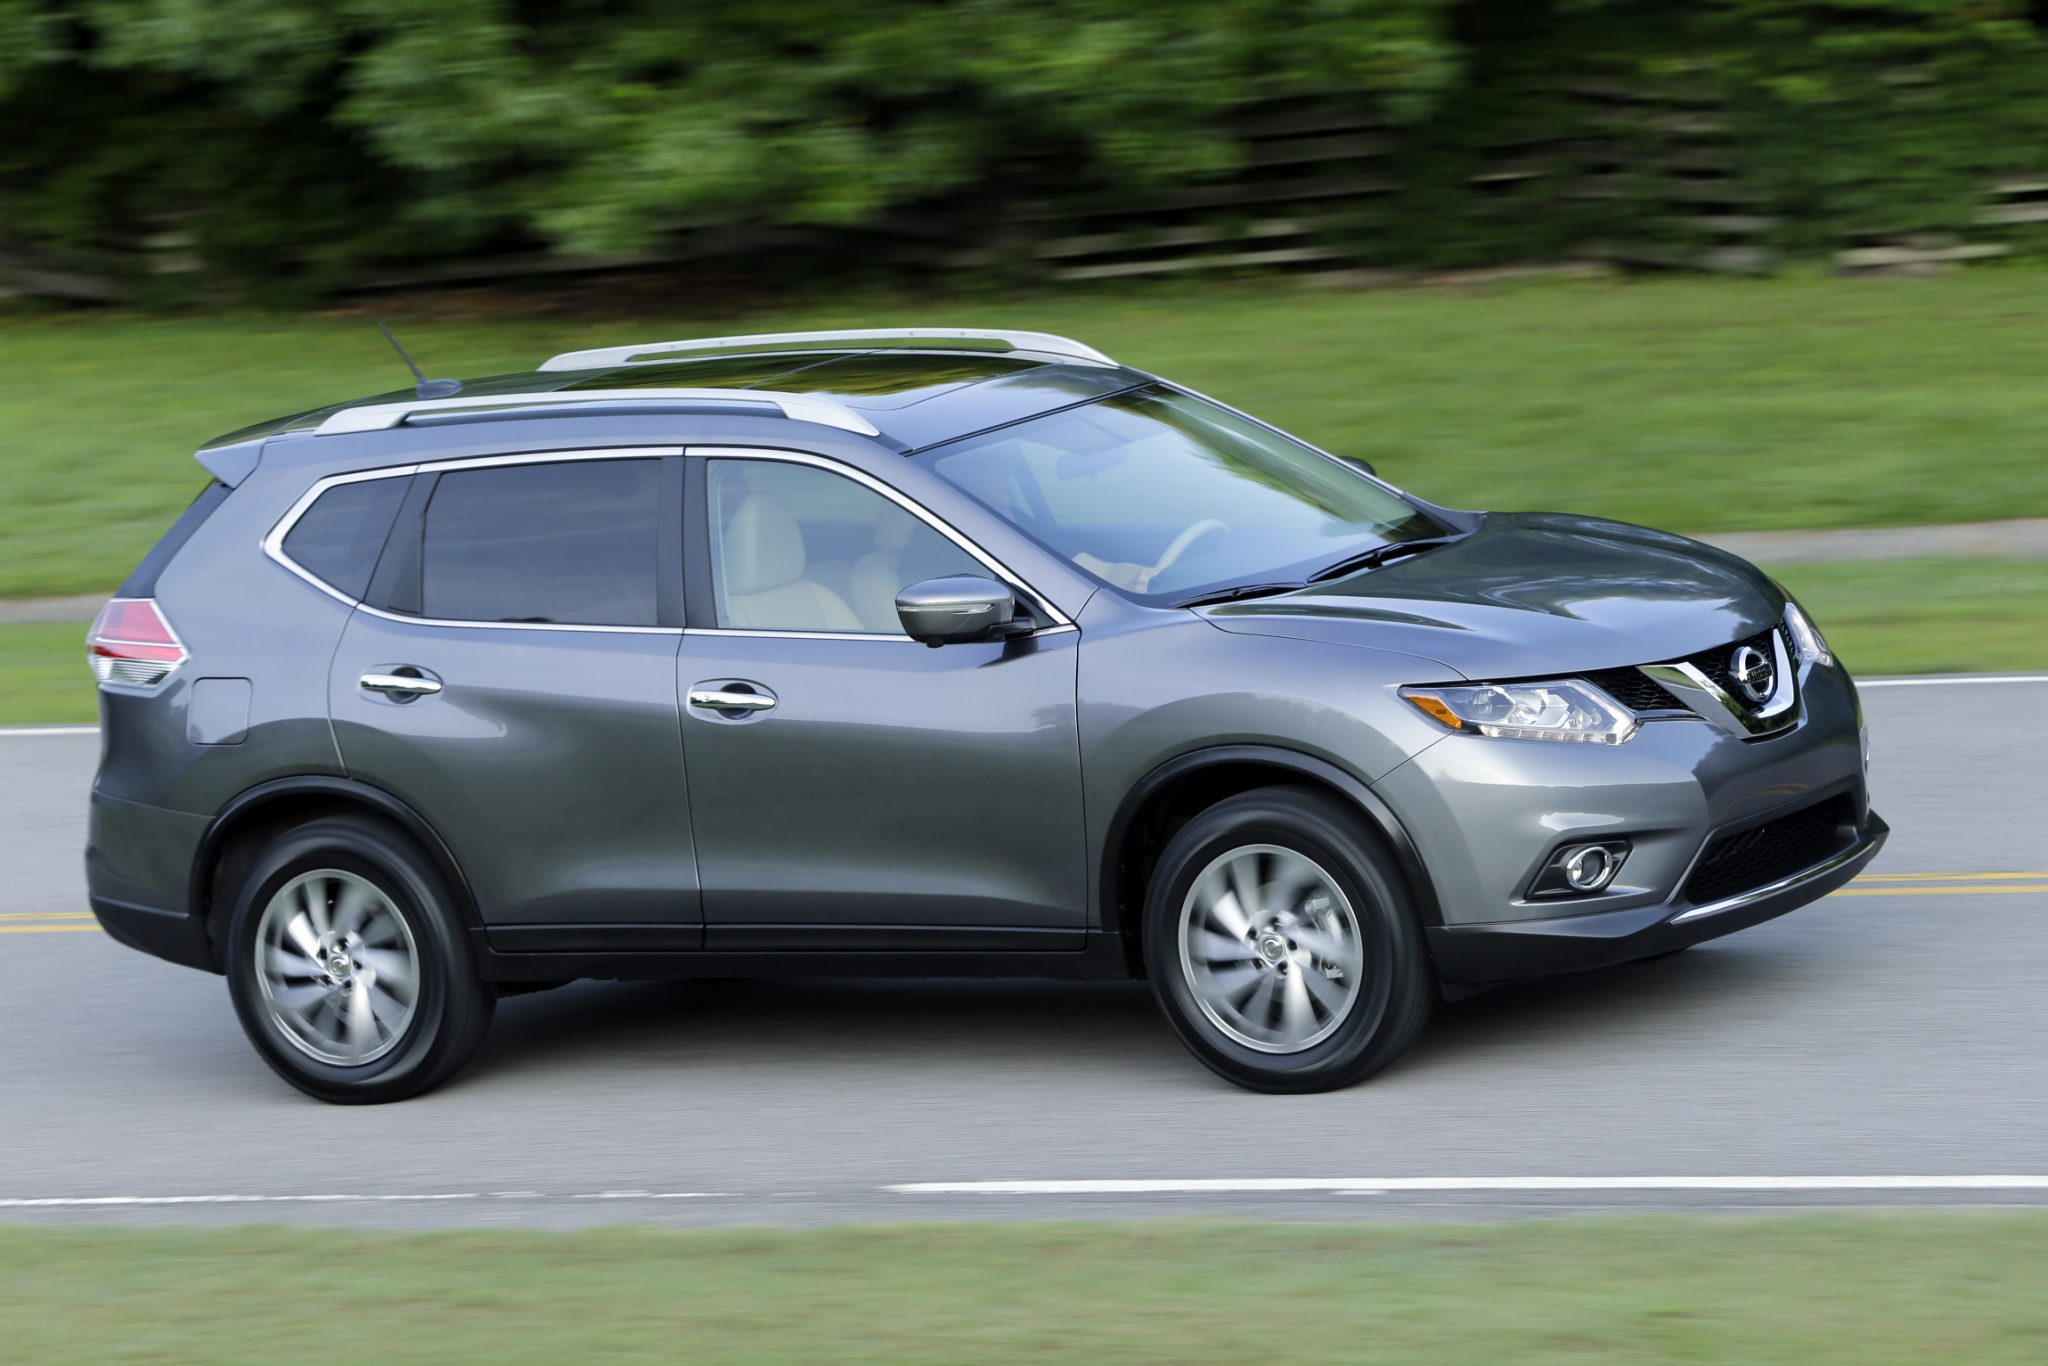 2014 Nissan Rogue APEAL Study